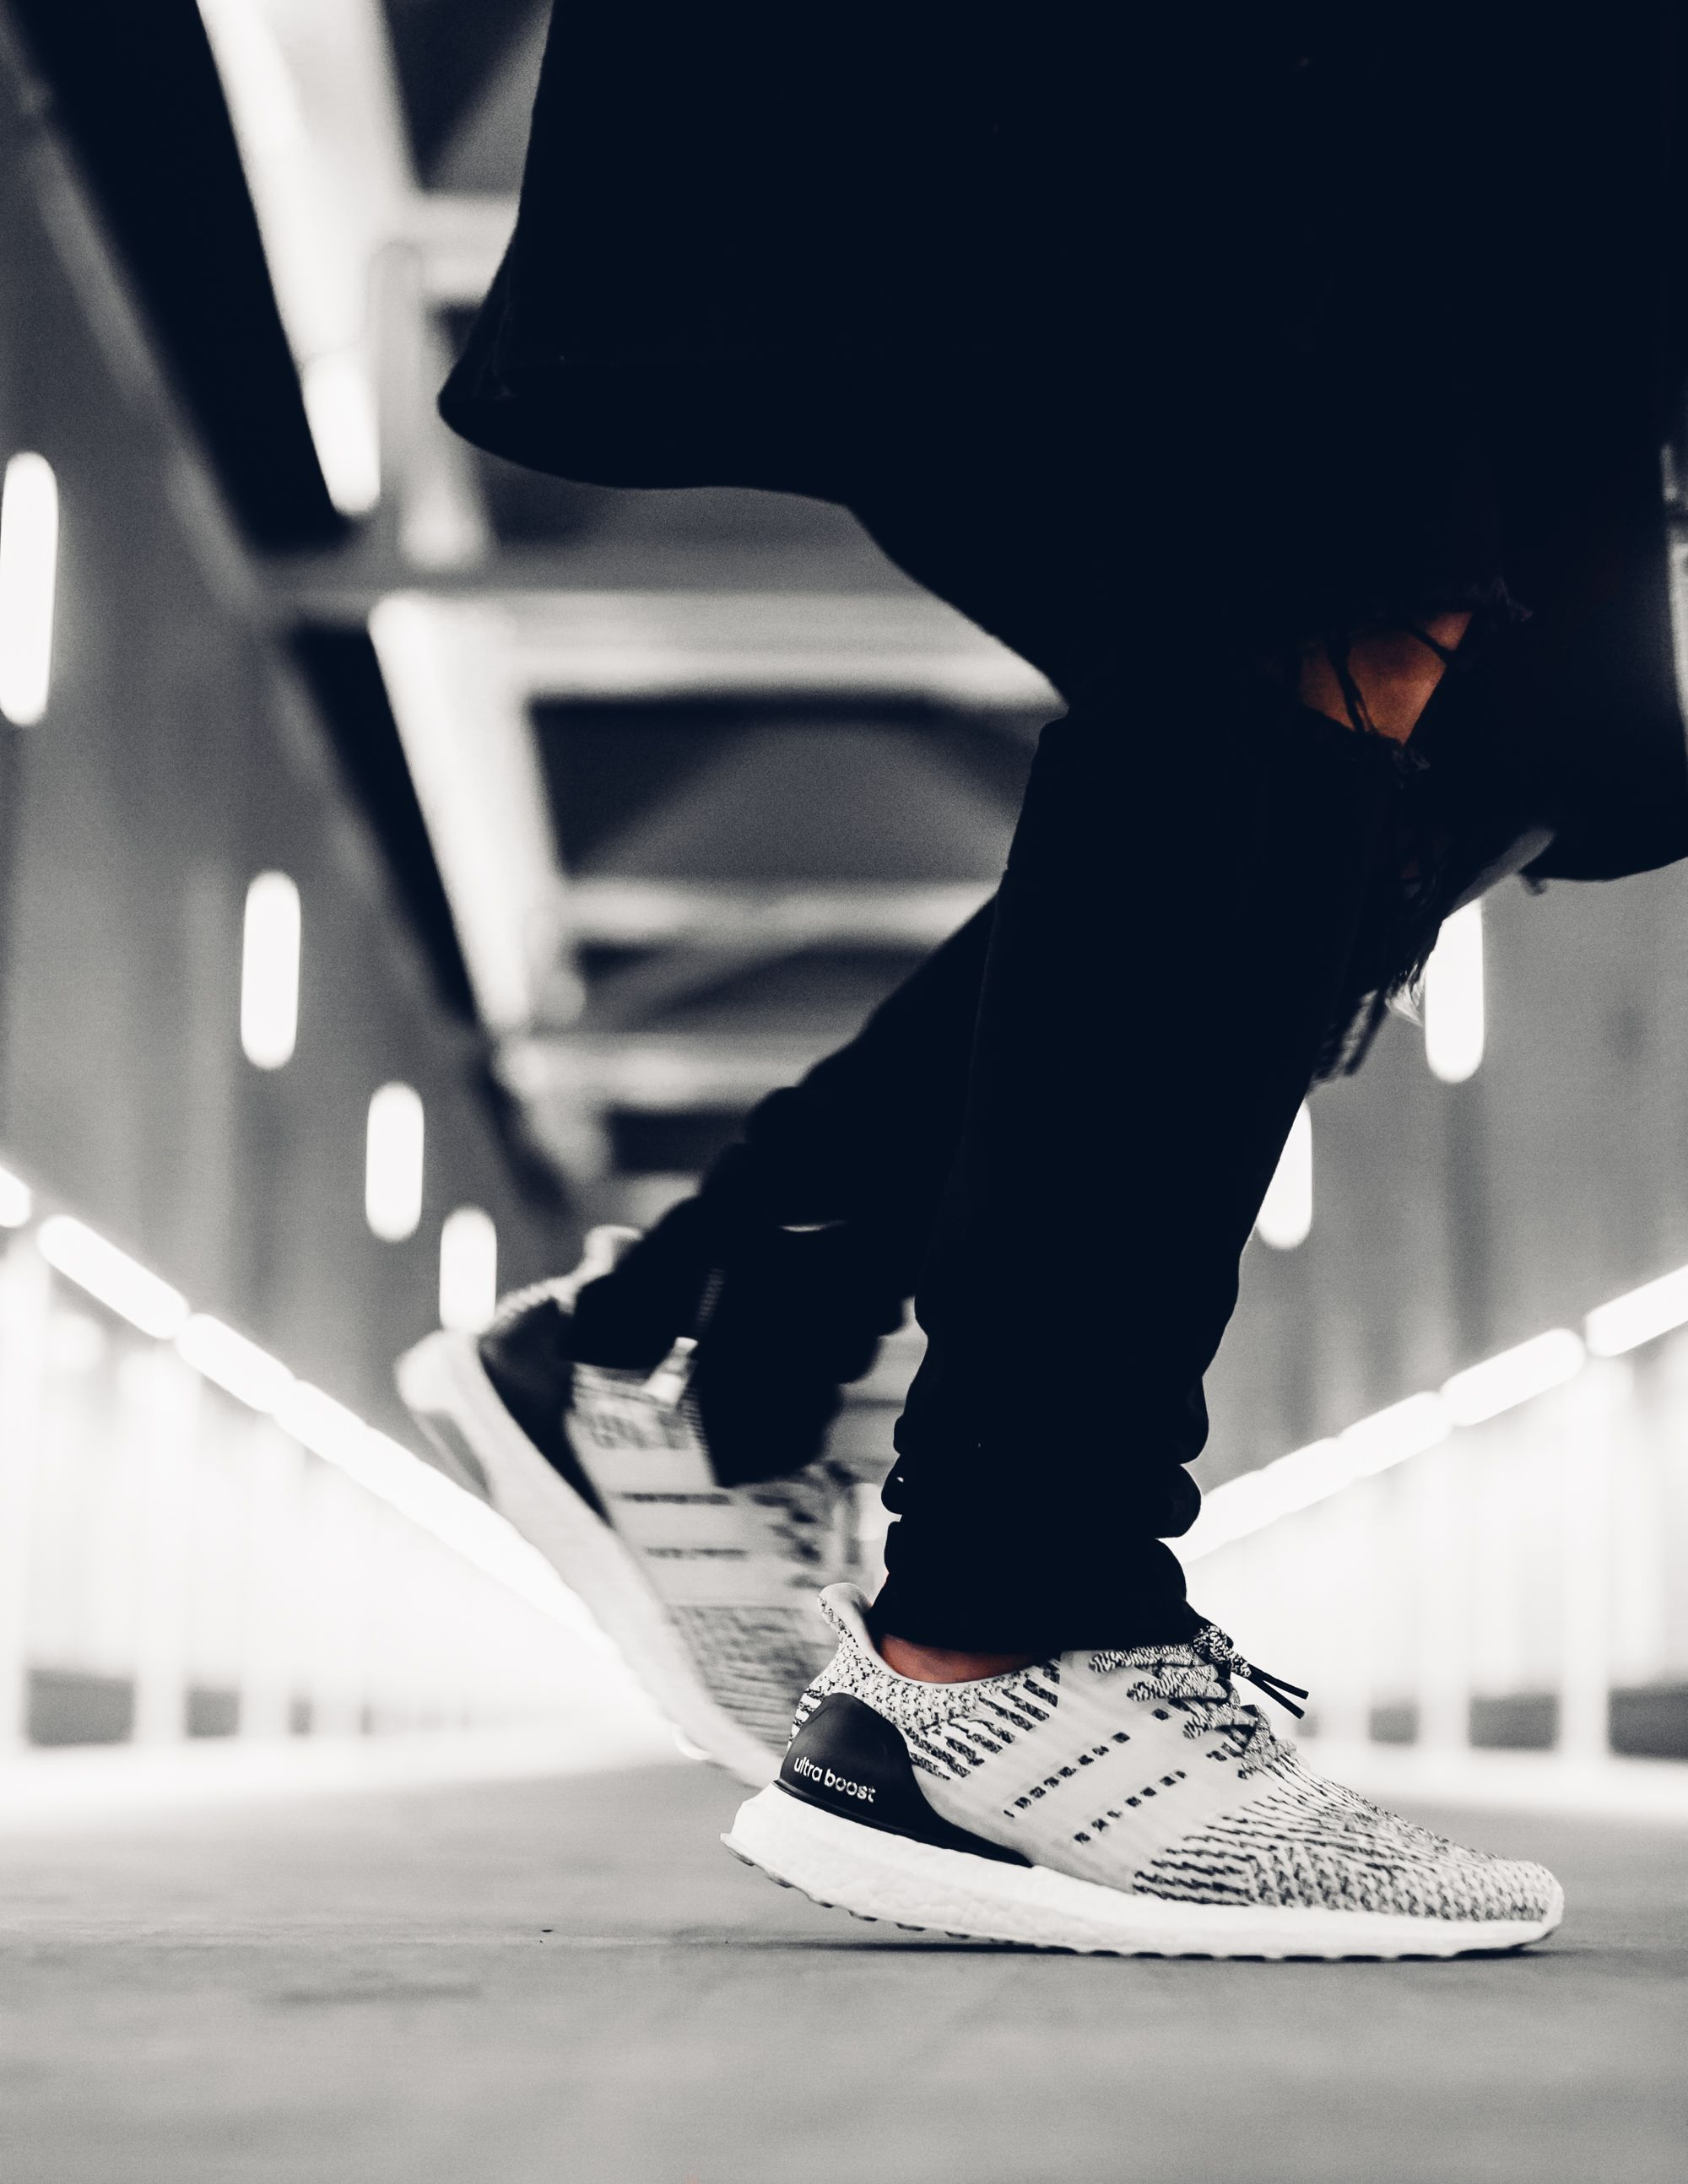 d27463064 An Exclusive Closer Look at the adidas Ultra Boost 3.0